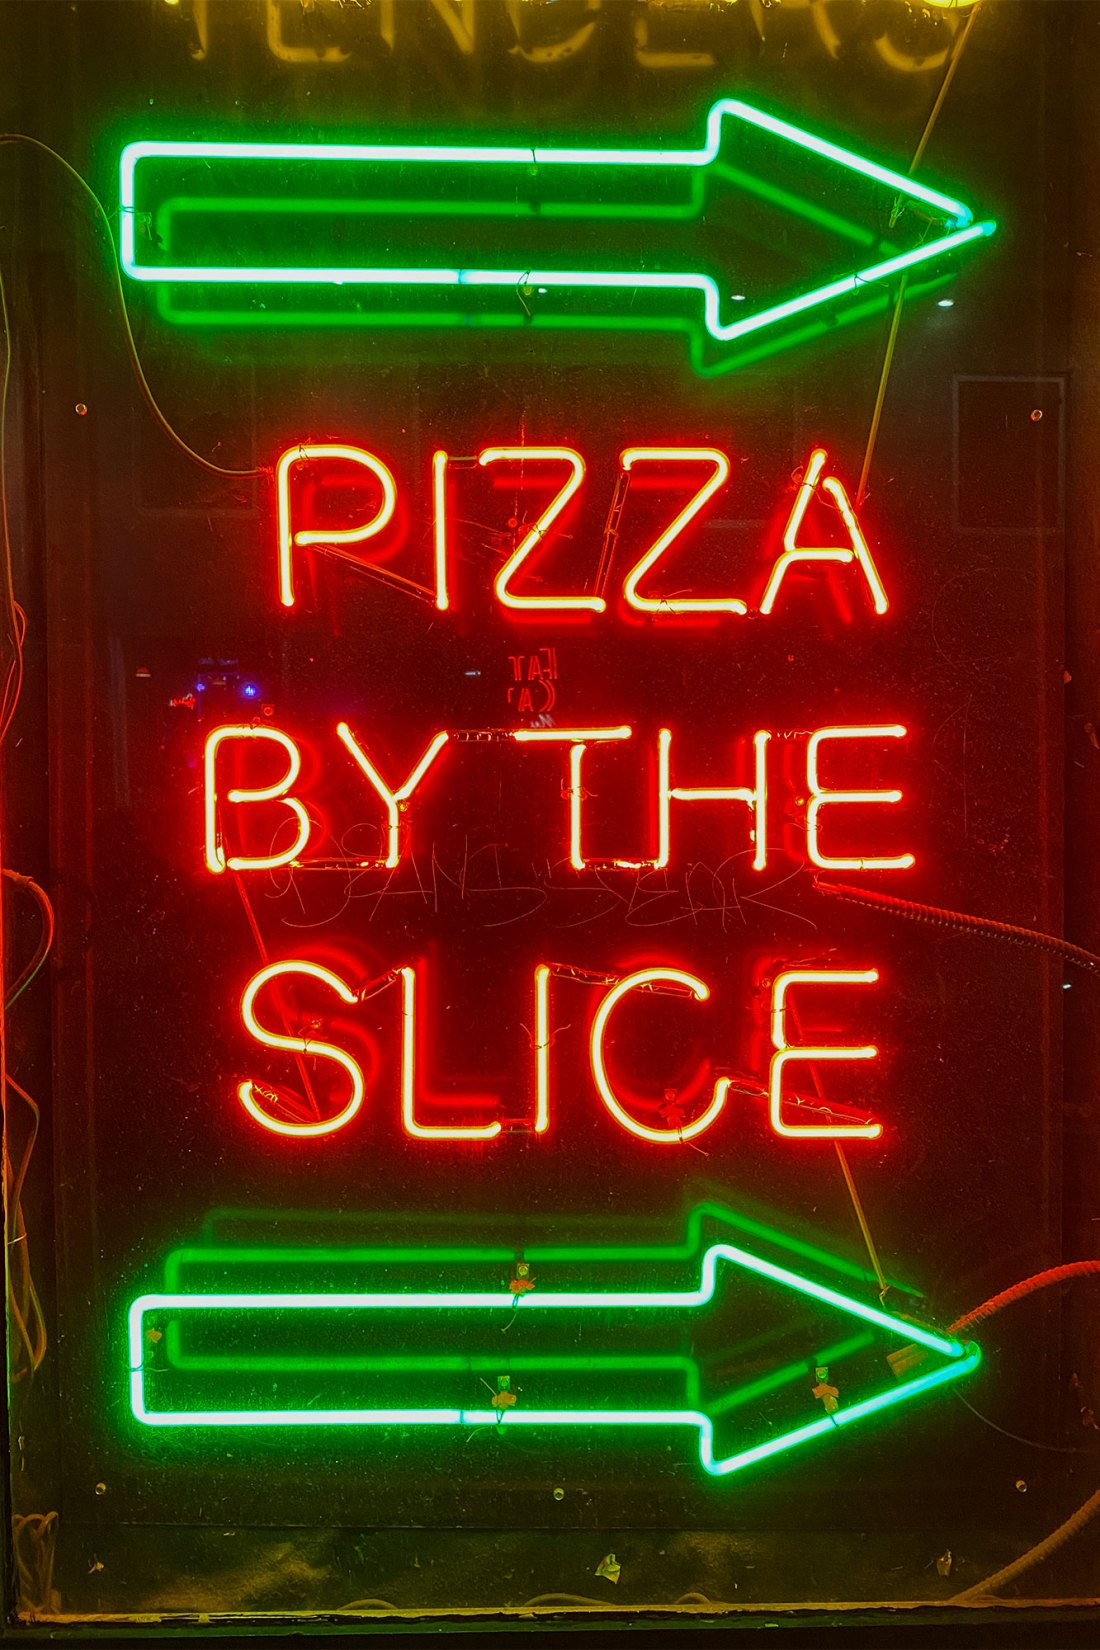 Green and red neon sign